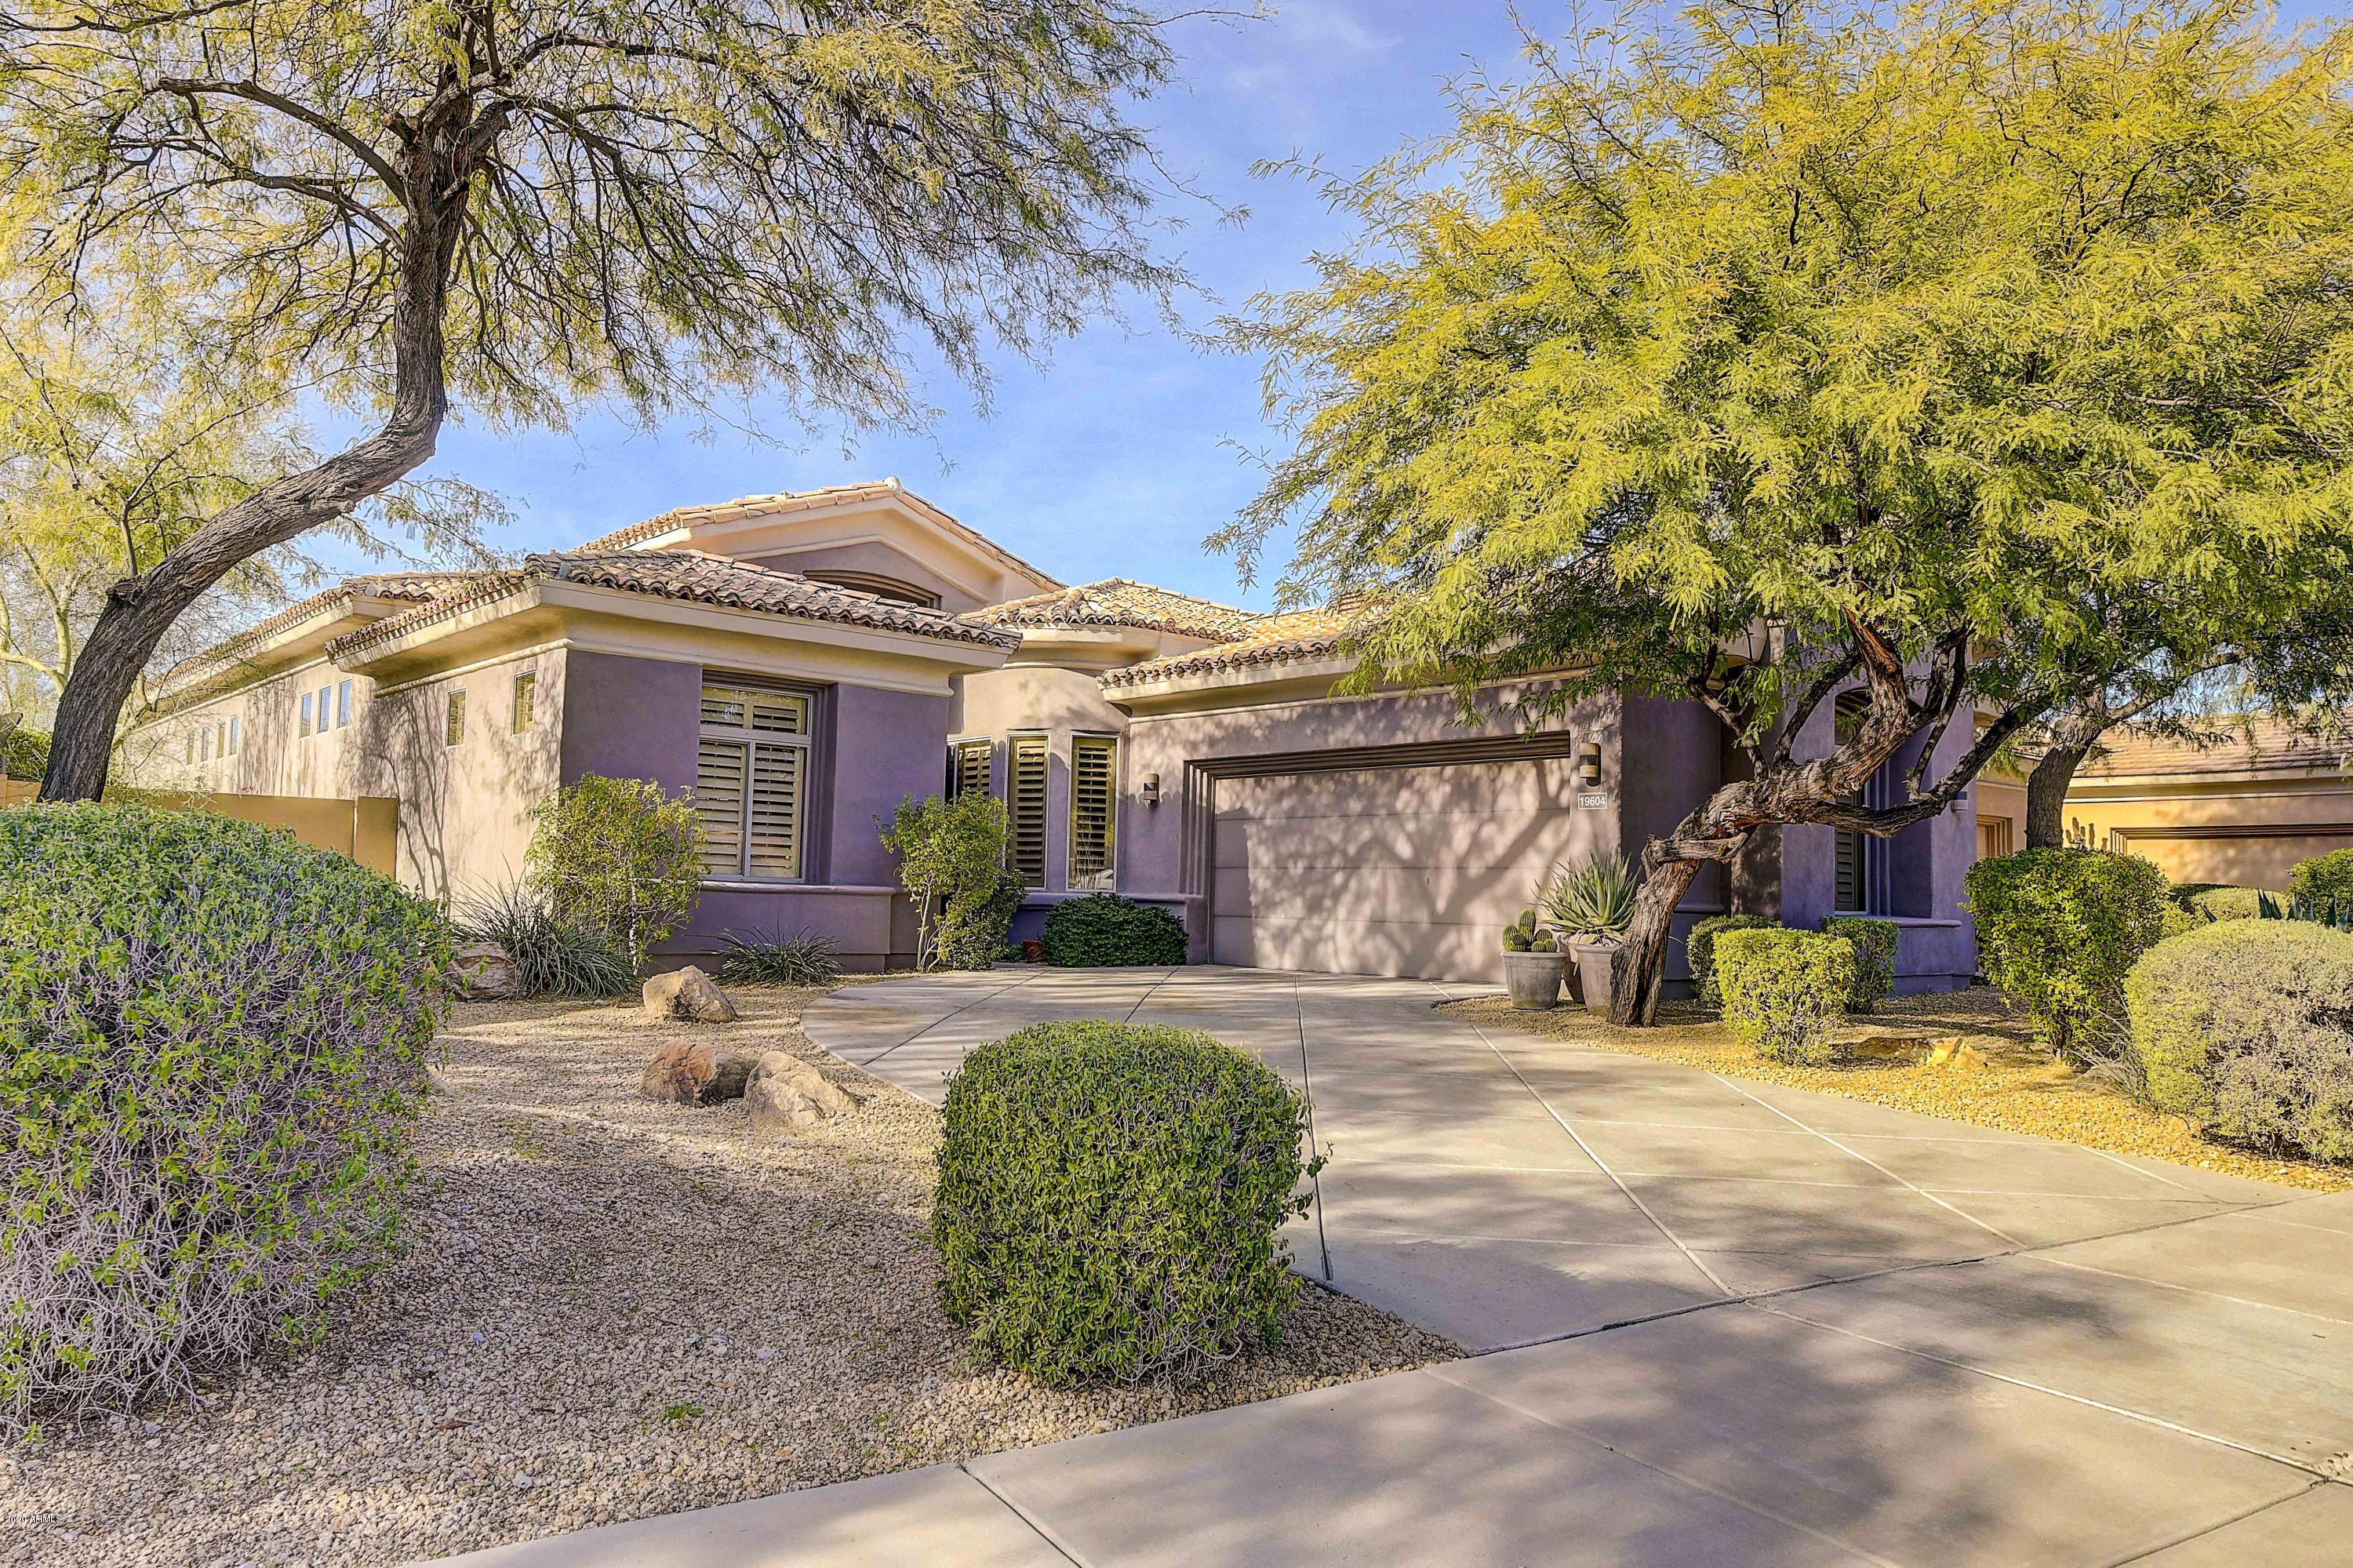 Photo of 19604 N 84TH Street, Scottsdale, AZ 85255